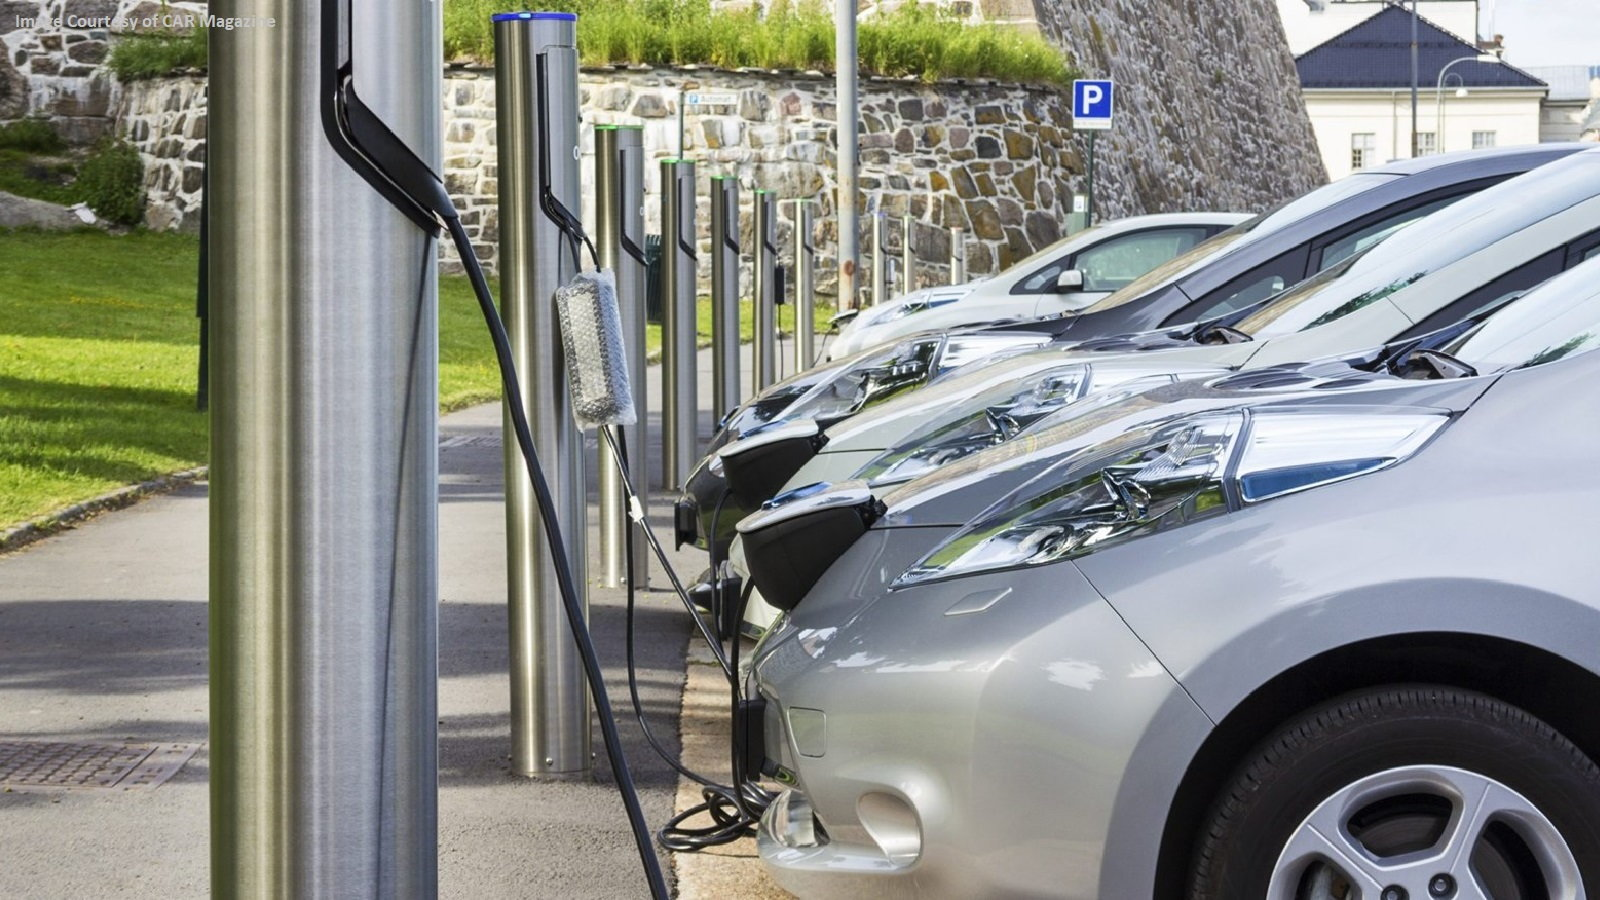 7 Reasons Internal Combustion Engines are Not Going Away